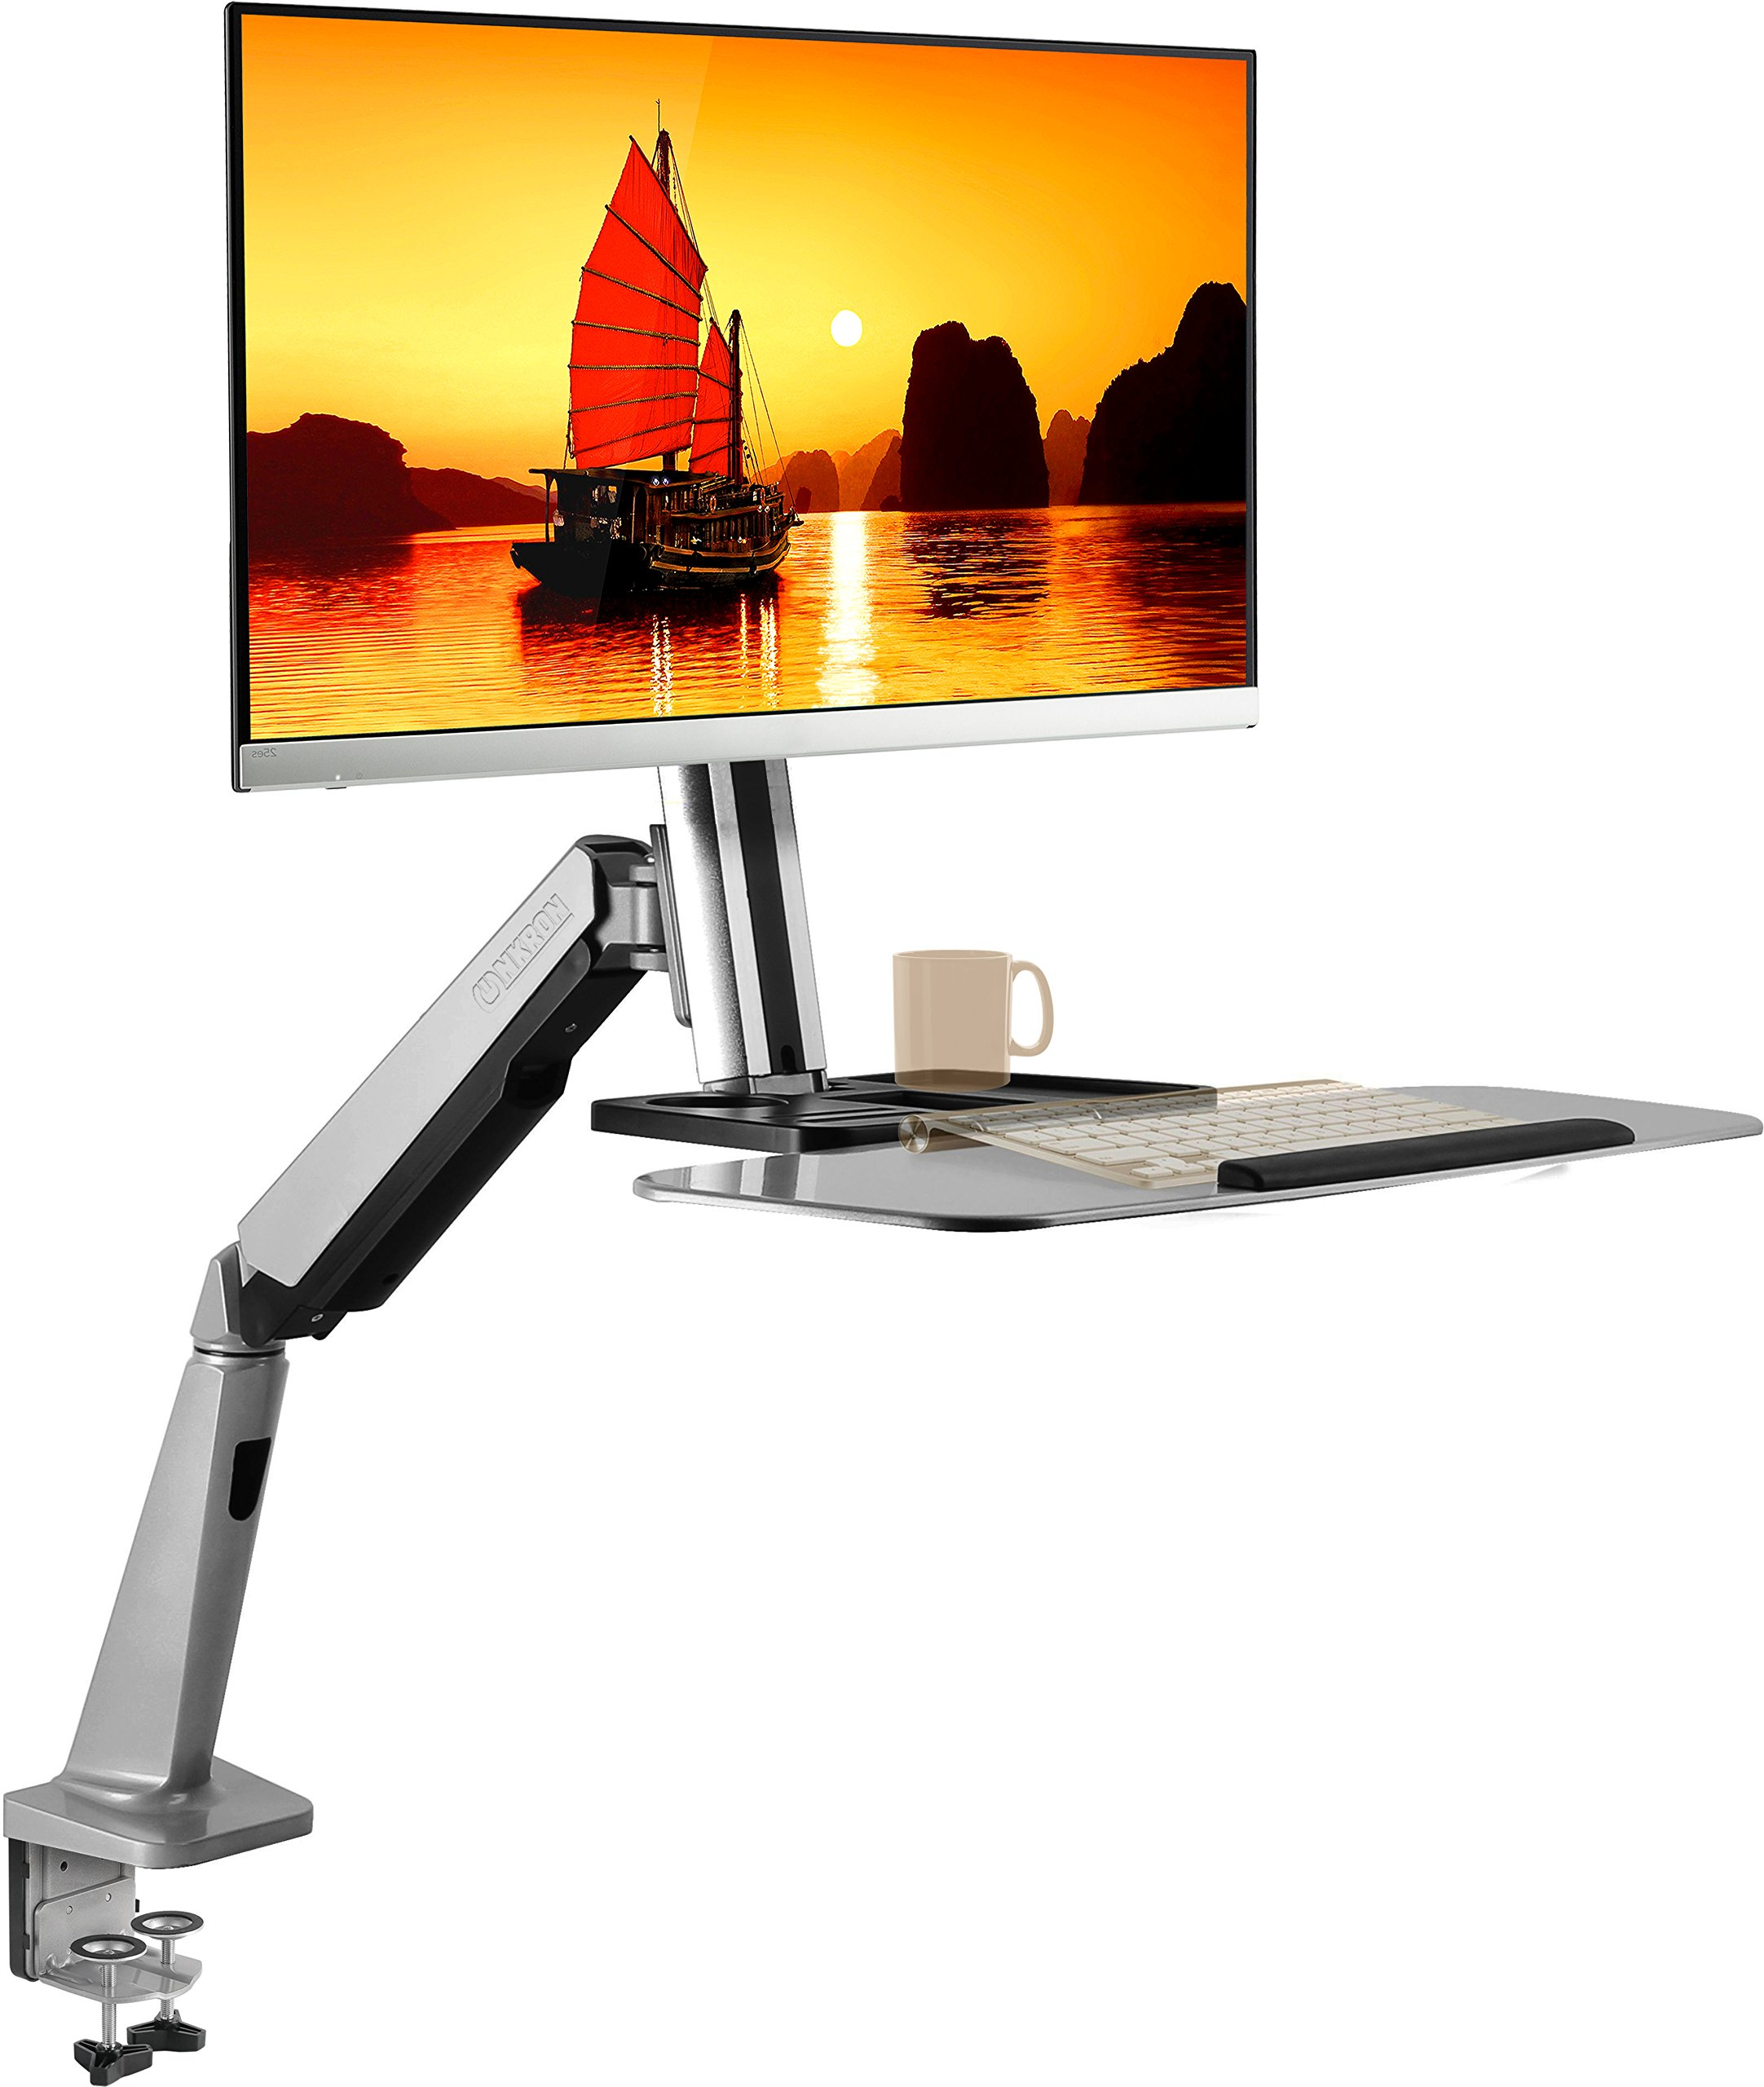 ONKRON Desk Mount Stand Up Workstation Single Monitor Mount Standing Desk Converter with Height Adjustable Keyboard & Counterbalance Monitor Arm for 13-32 Inch LCD LED Flat Panel Monitors W1GD Silver by ONKRON